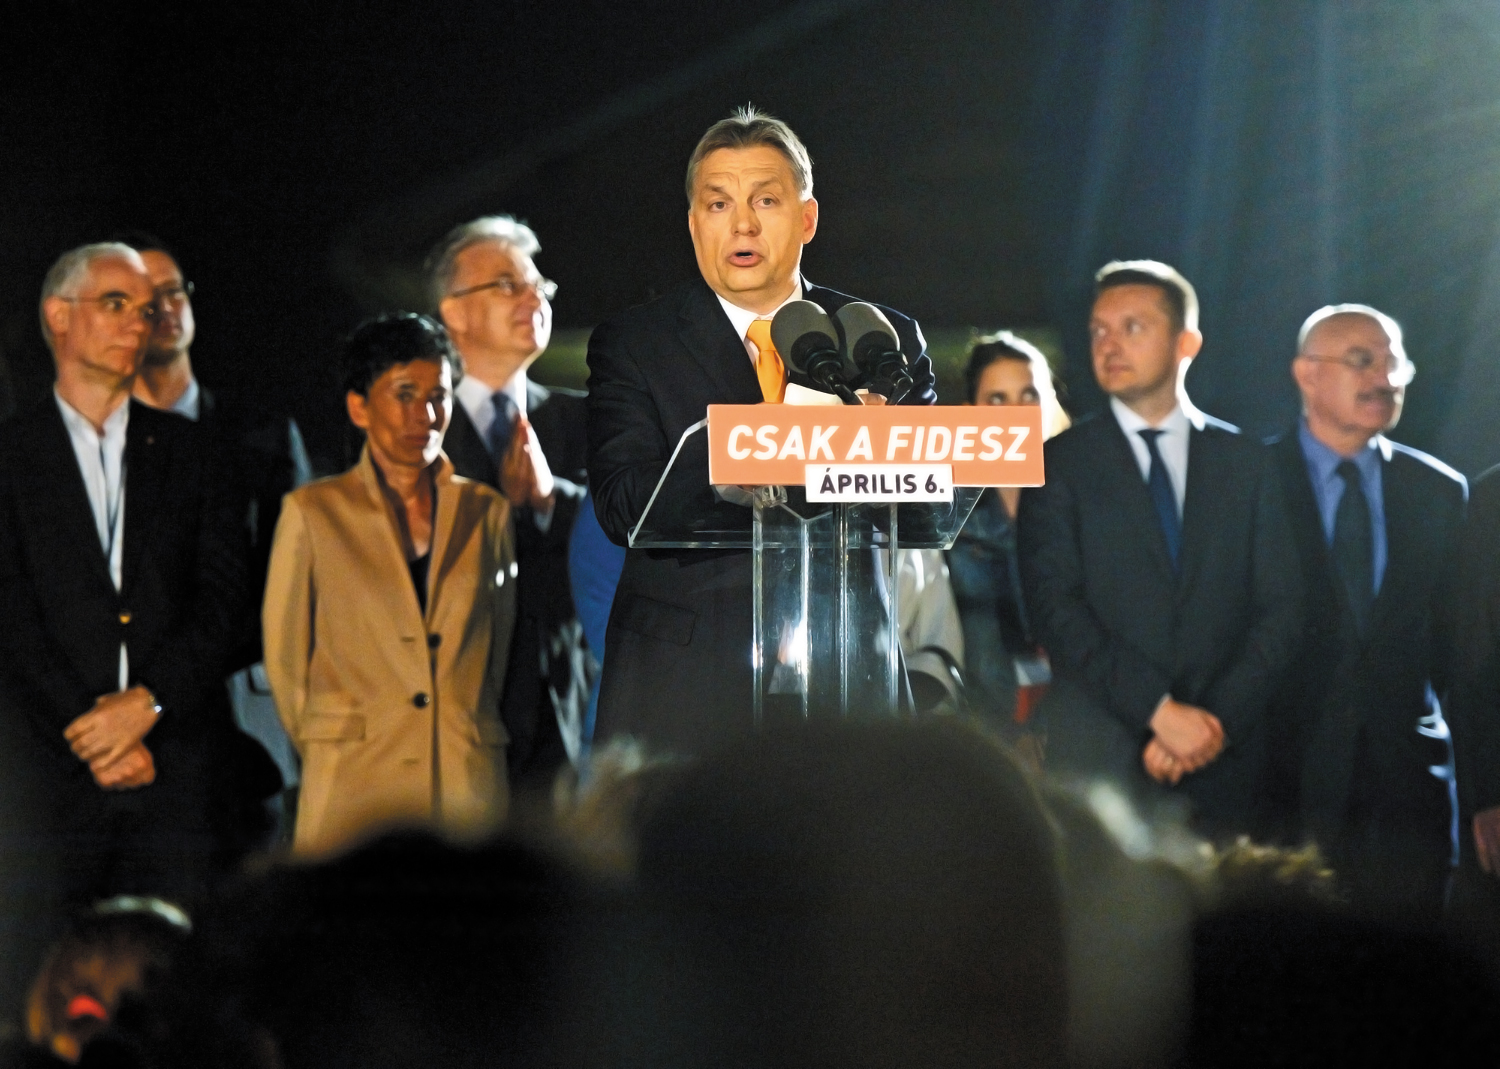 Hungarian-Prime-Minister-Viktor-Orbán-leader-of-the-Fidesz-party-April-6-2014.sz